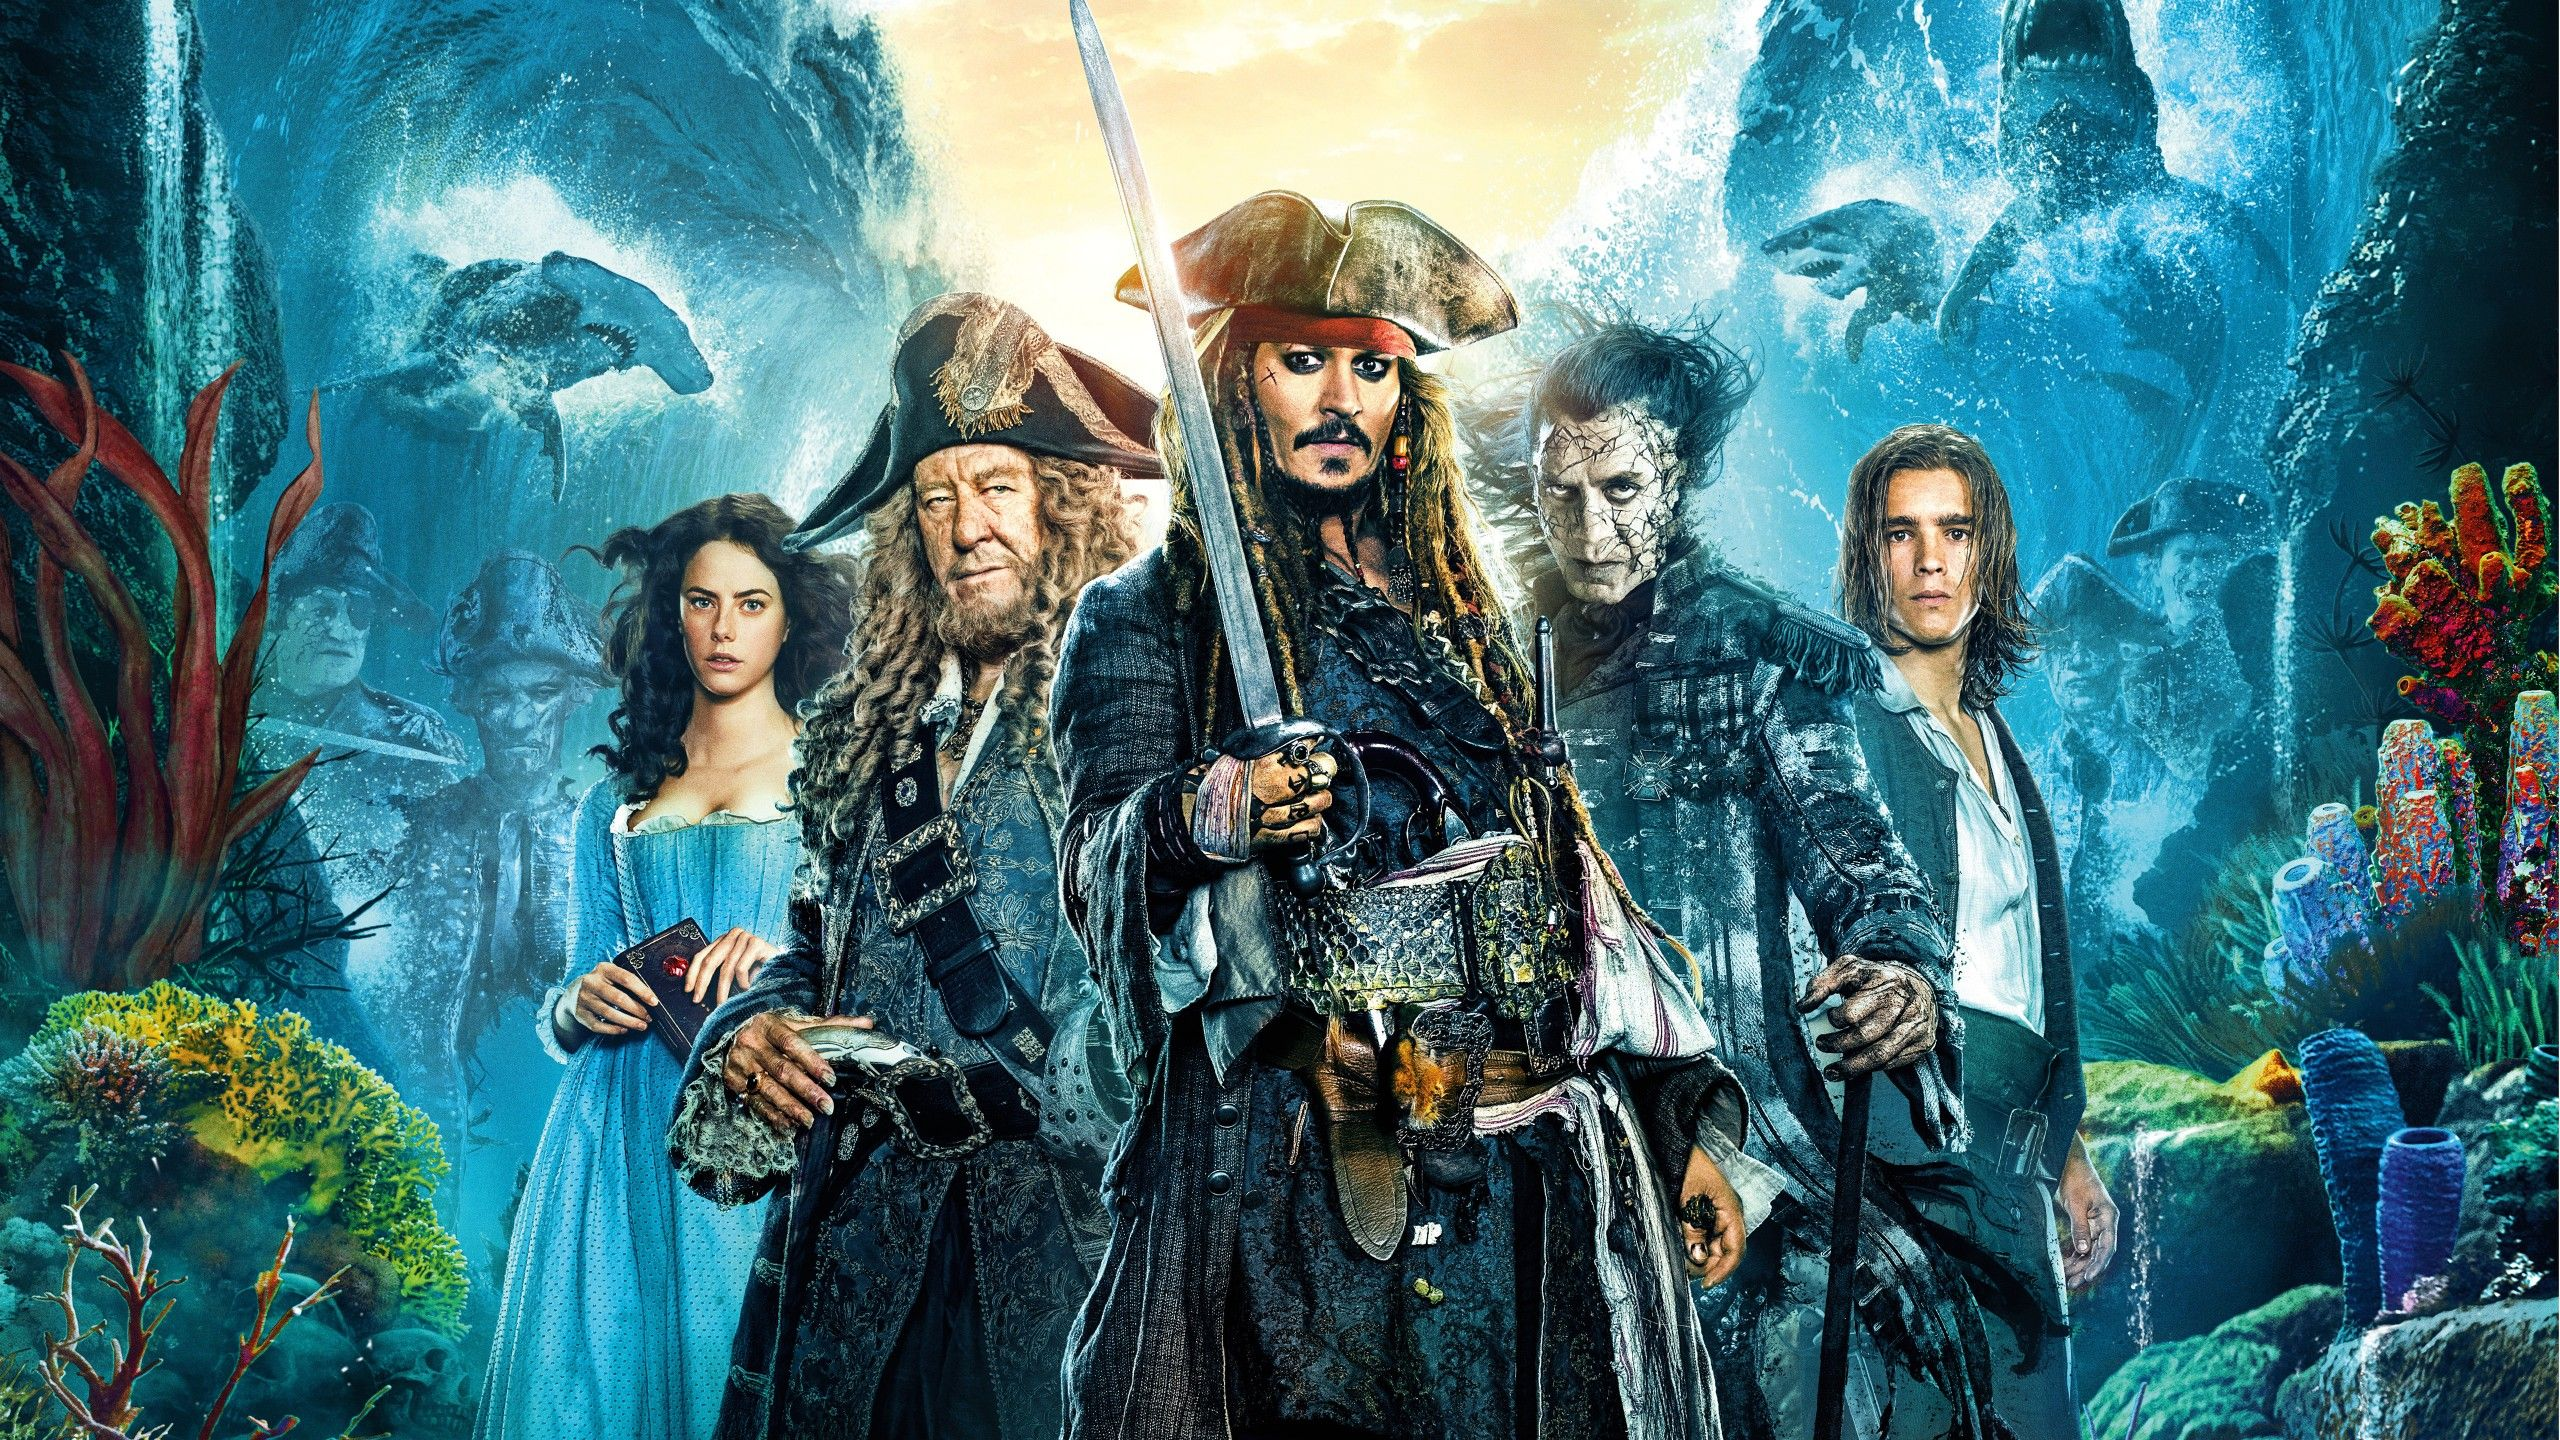 Pirates Of The Caribbean Dead Men Tell No Tales Will Turner Pirates Of The Caribbean Dead Men Tell No Tales 2560x1440 Pirates Of The Caribbean Dead Man Pirates